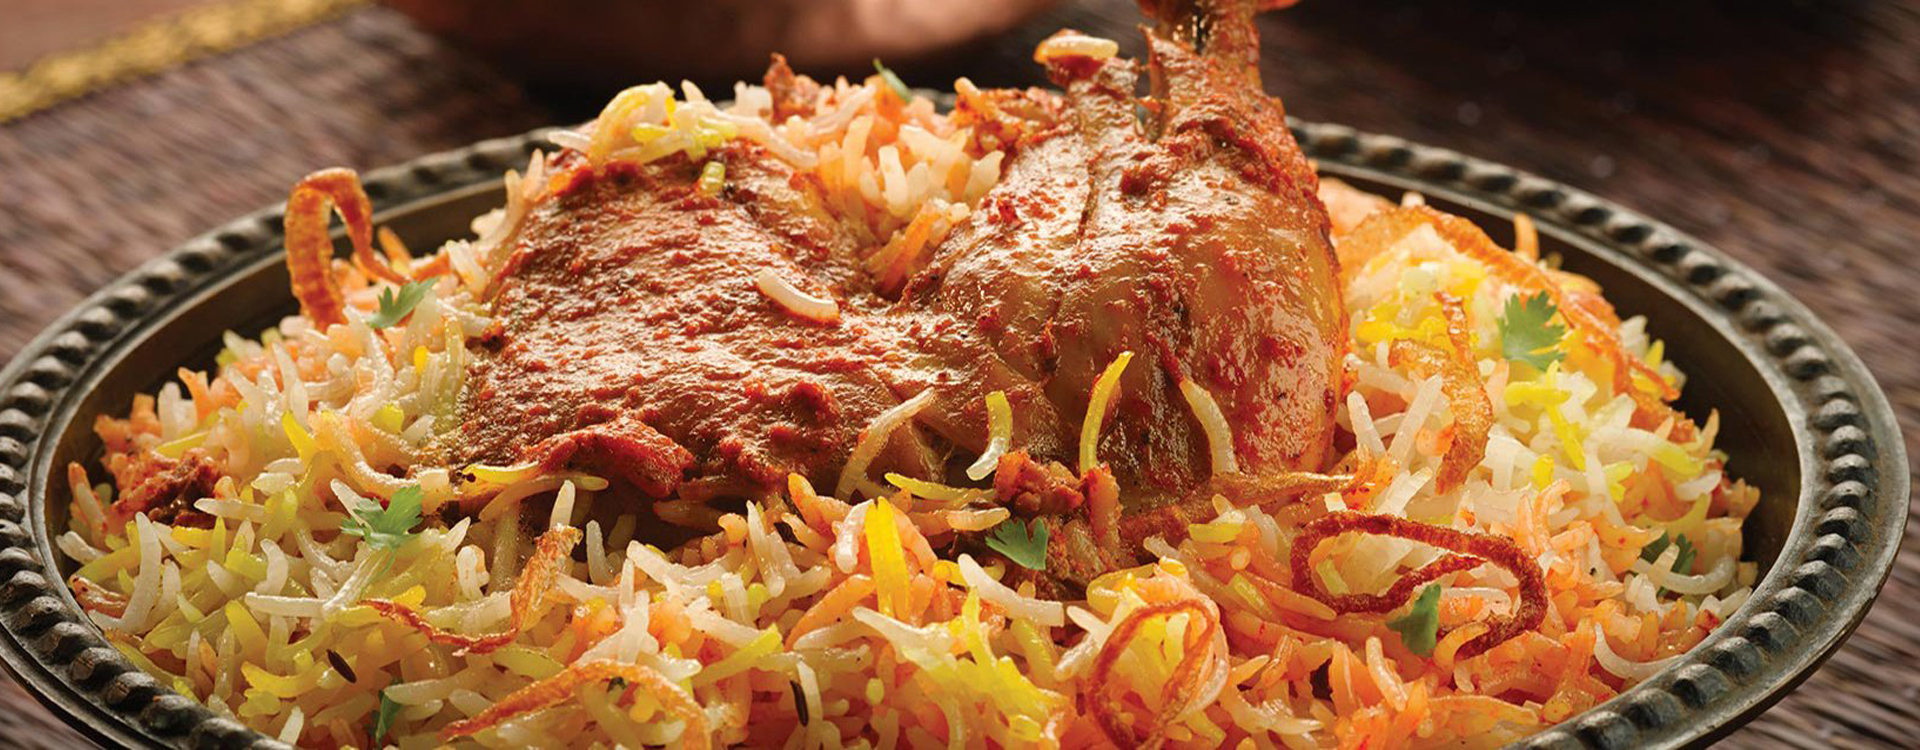 Wahid Biryani - Popular Street Food Joints in Lucknow That One Must Not Miss